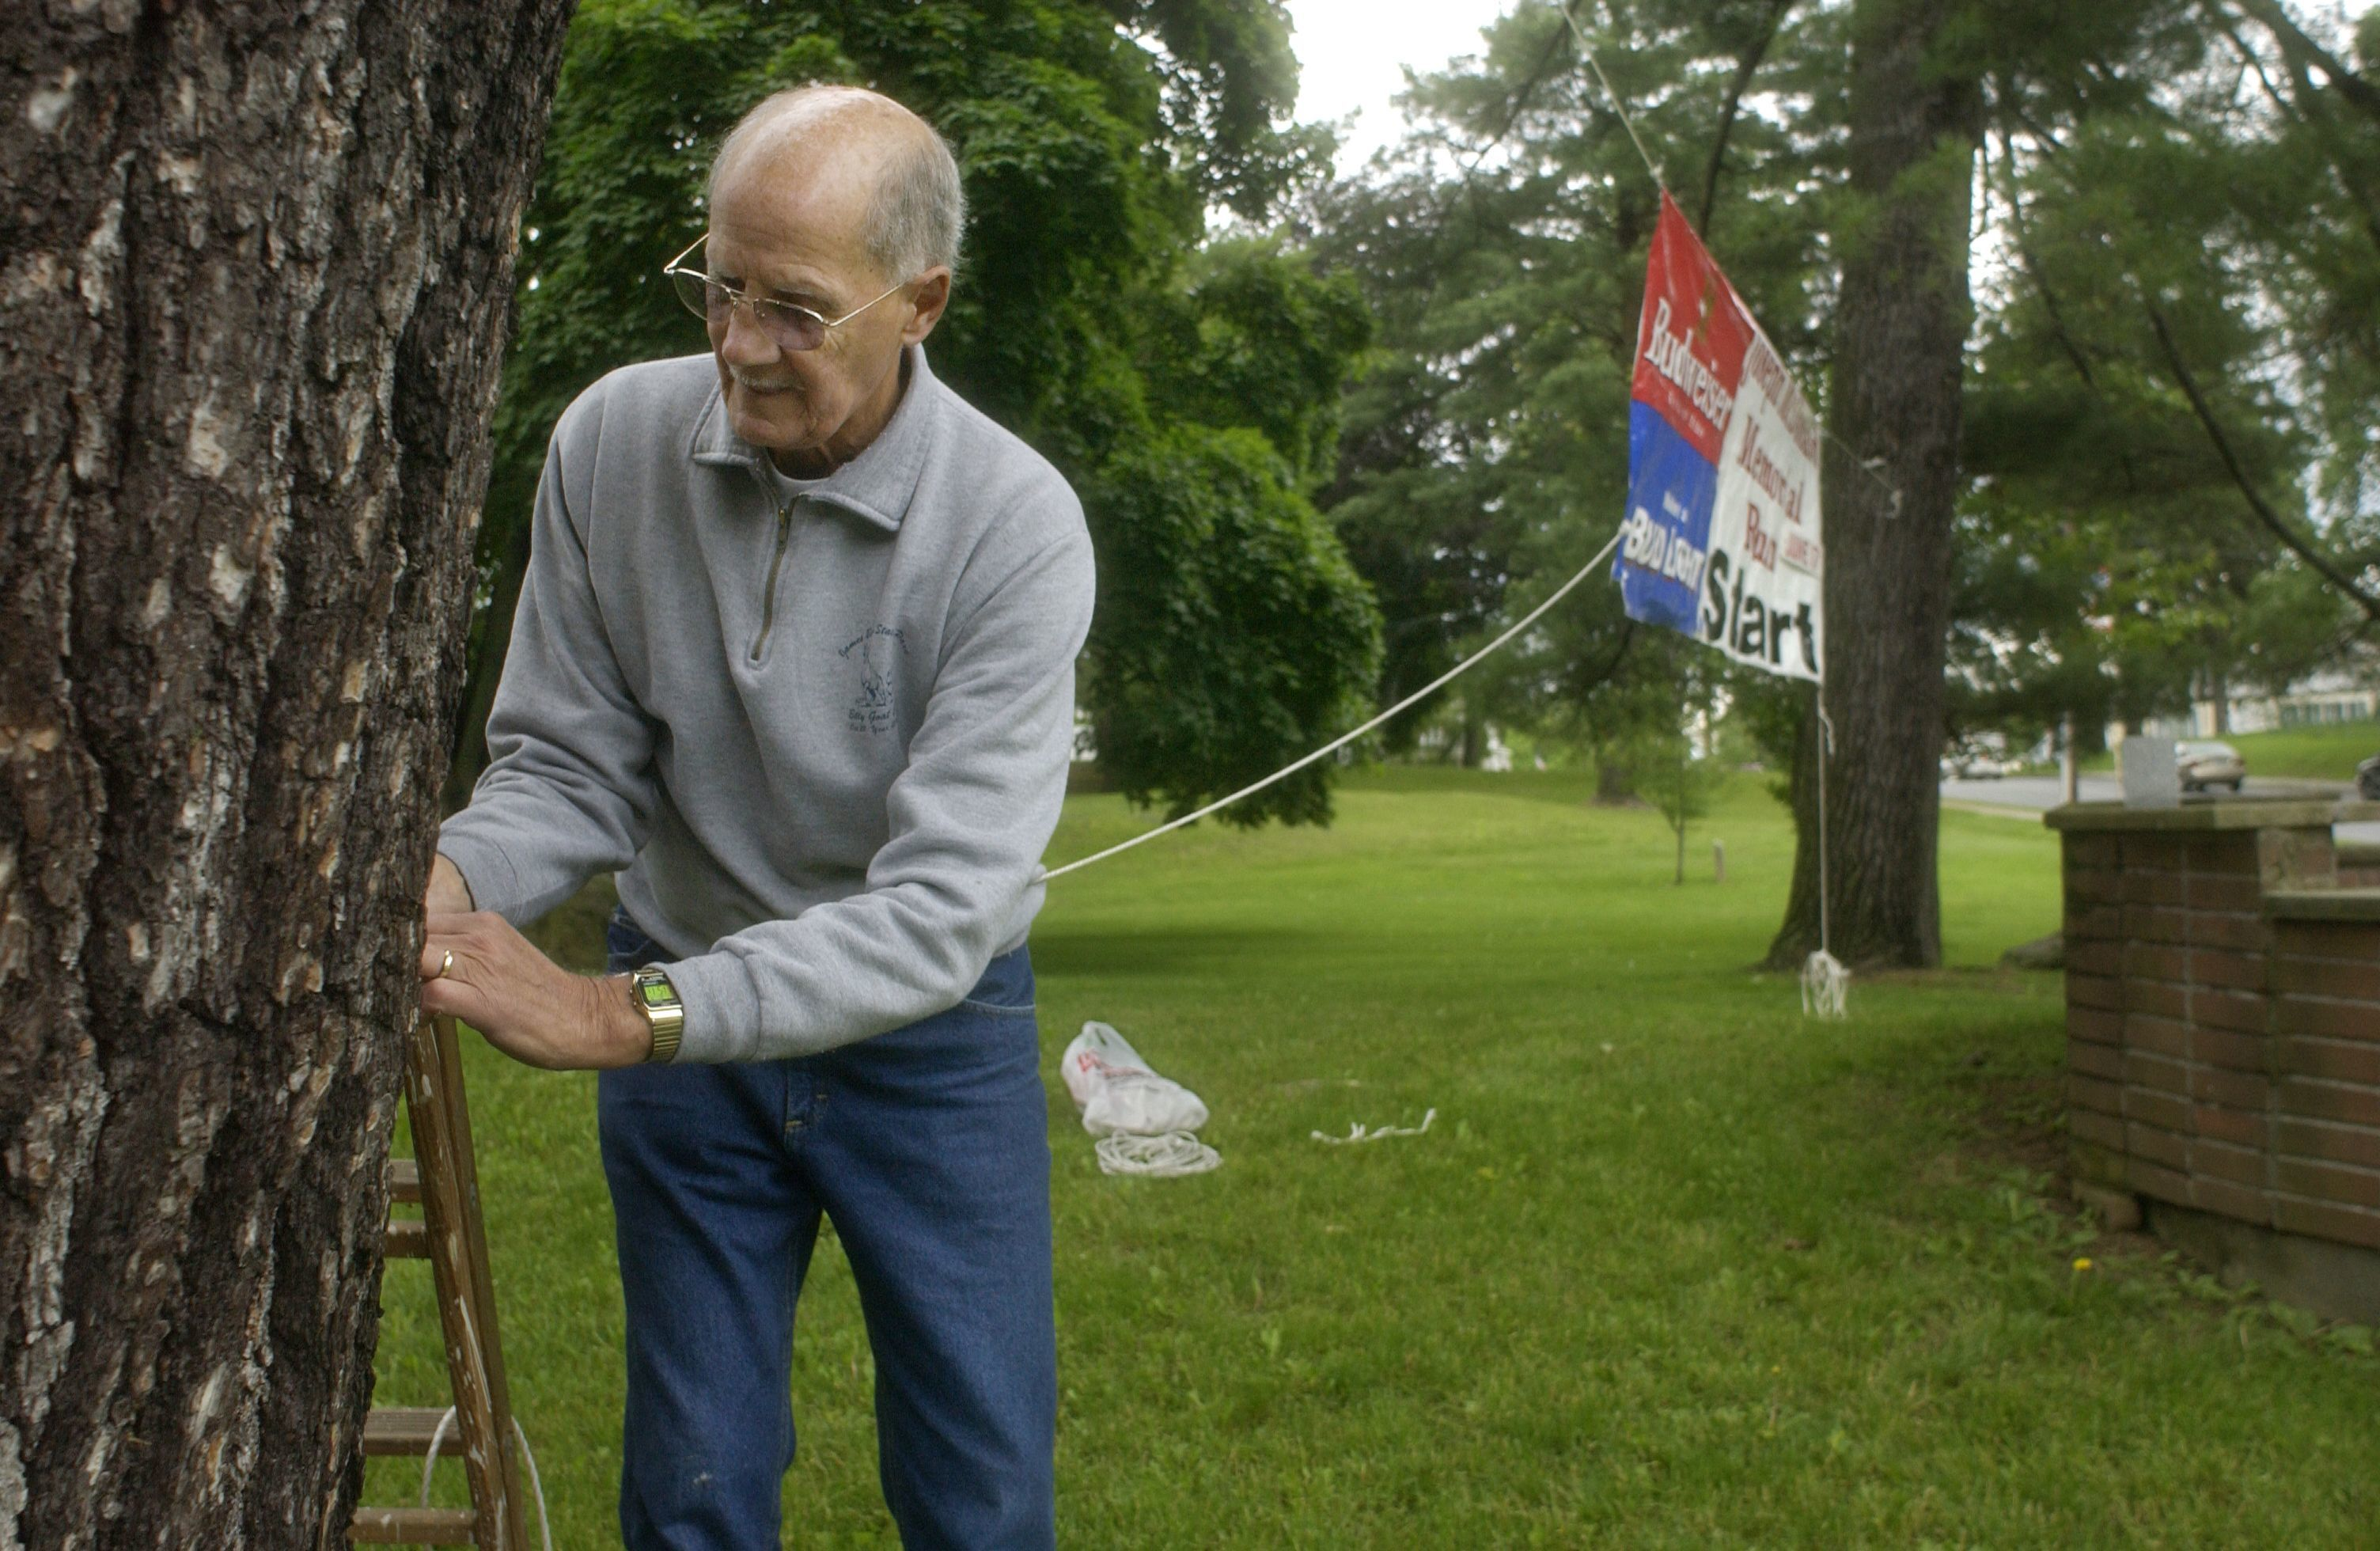 In this June 2006 file photo, Pete Sanfilippo hangs a banner for the Joseph McDonald/Bill Crusie Memorial Run in Mesier Park in the Village of Wappingers Falls. Sanfilippo, who died in 2016, will be honored during the June 1 event, which he established during the late 1970s.